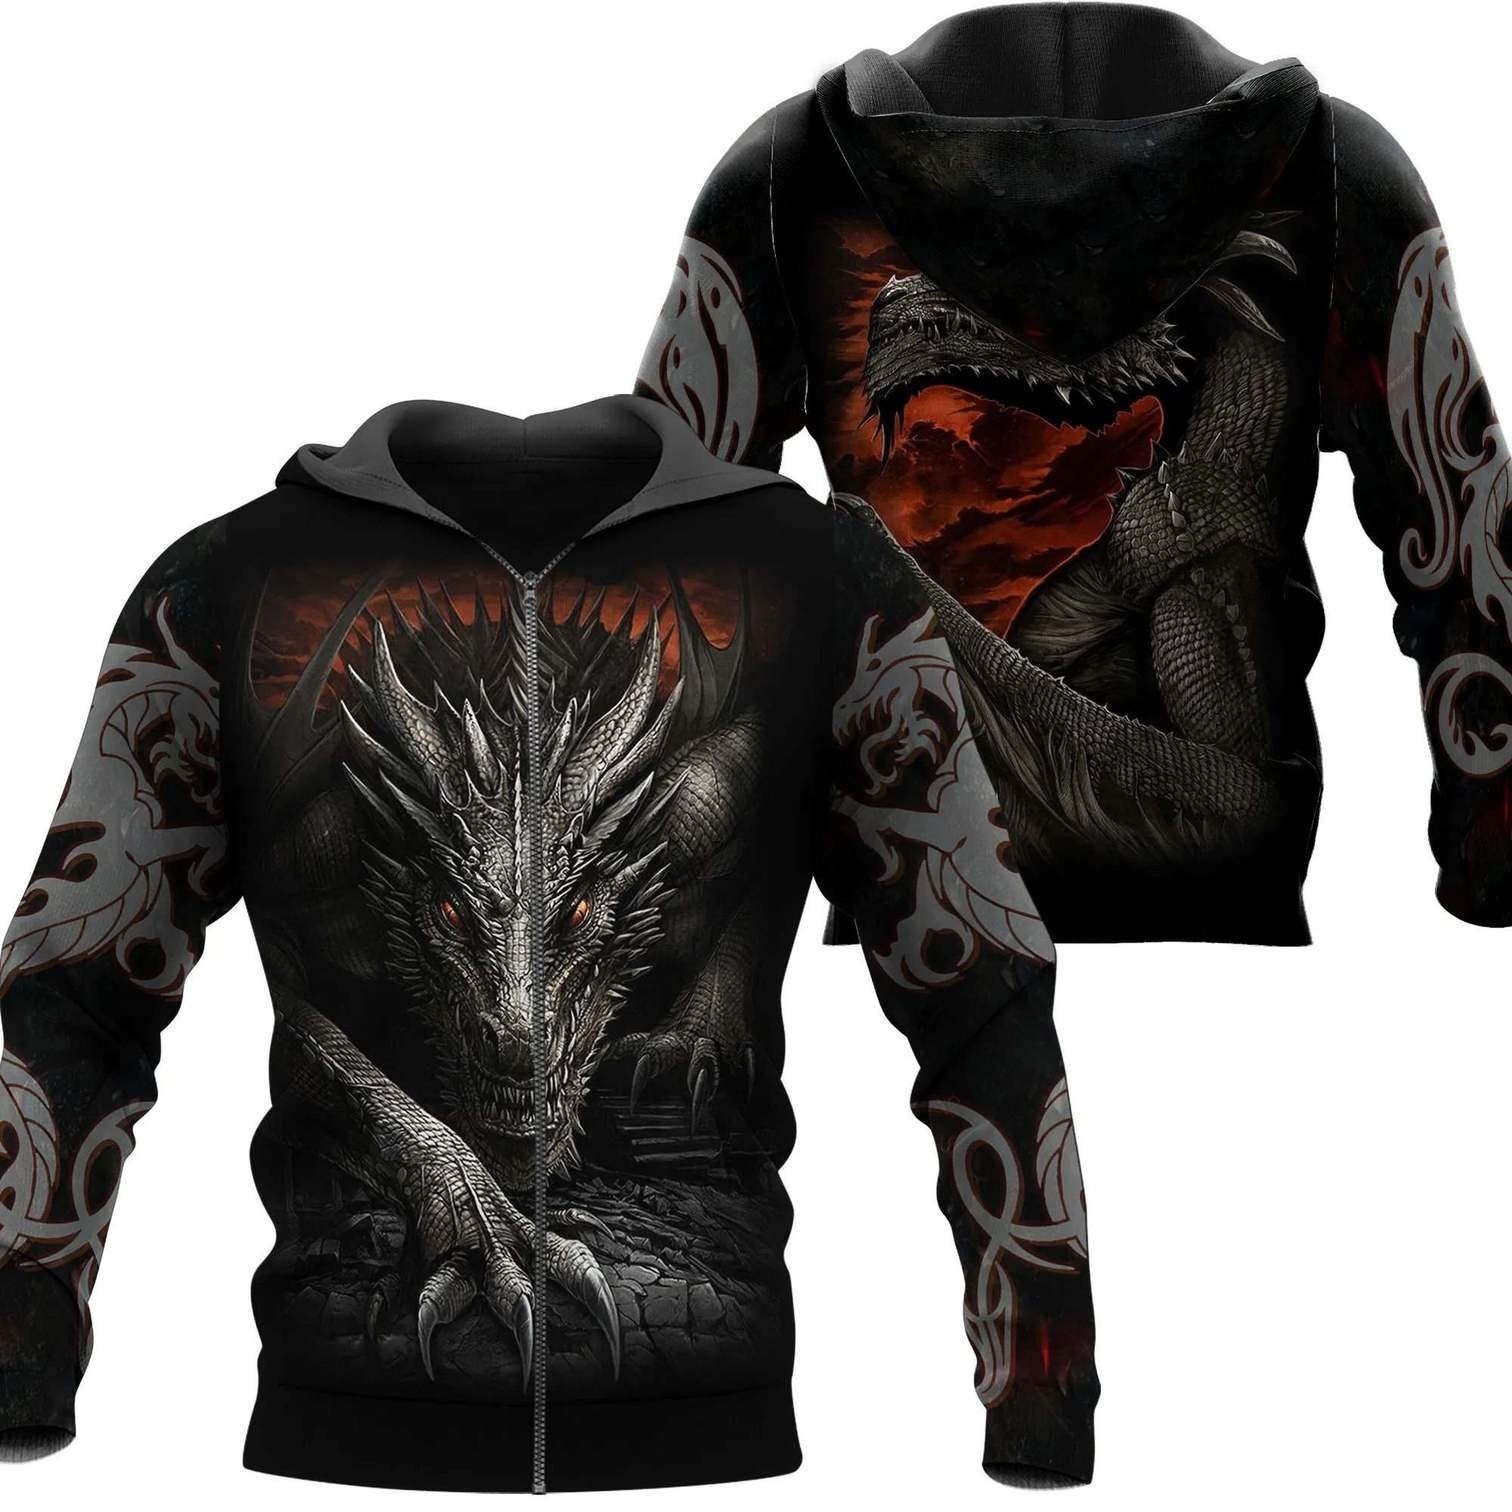 Dragon armor all over printed zip hoodie